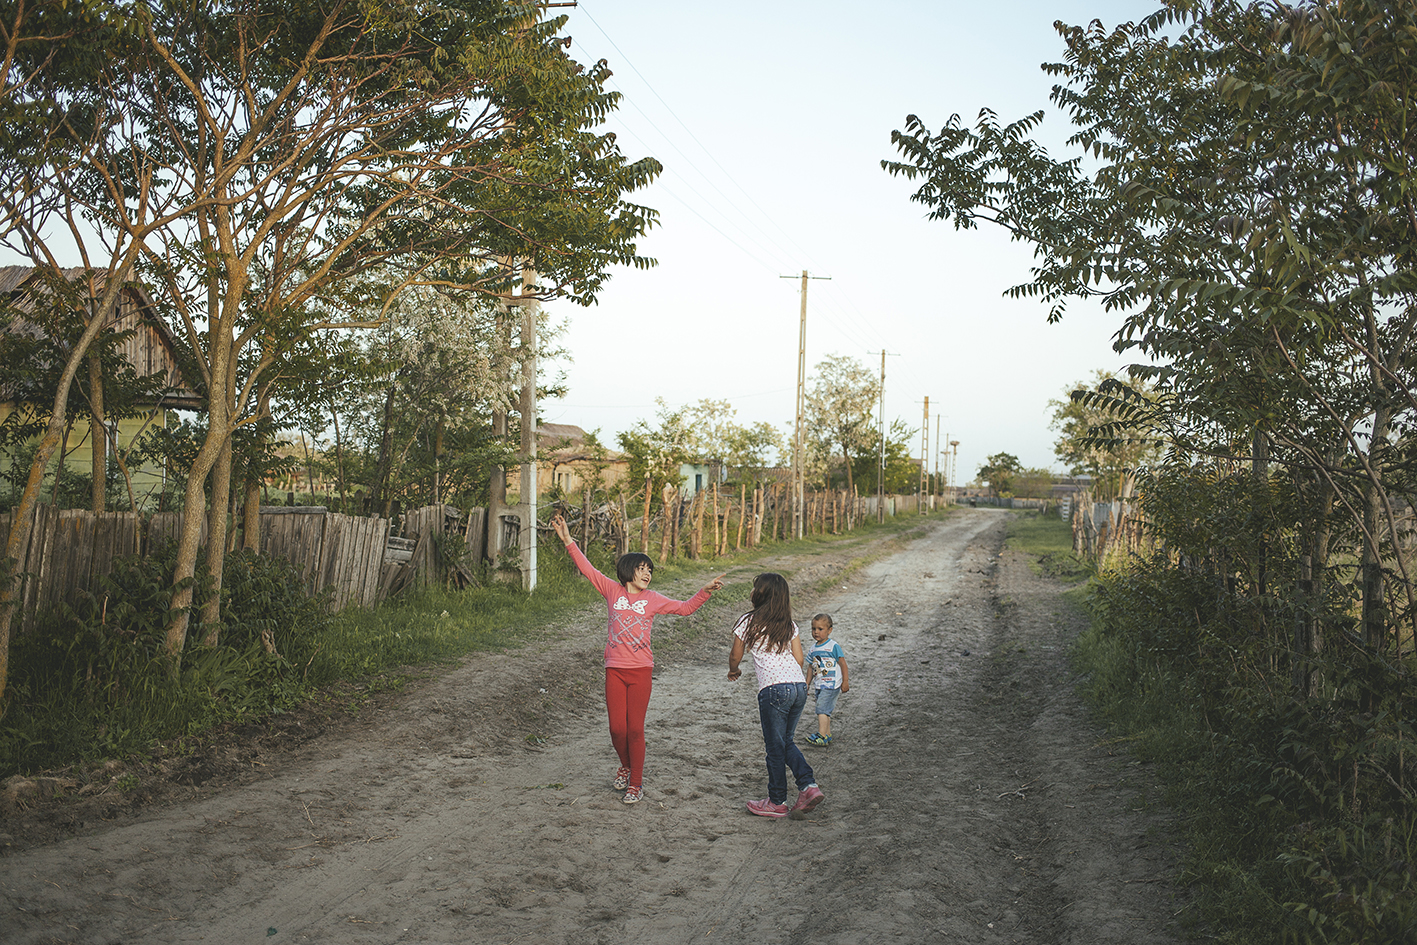 Children playing on the street, Letea, Romania, 2015